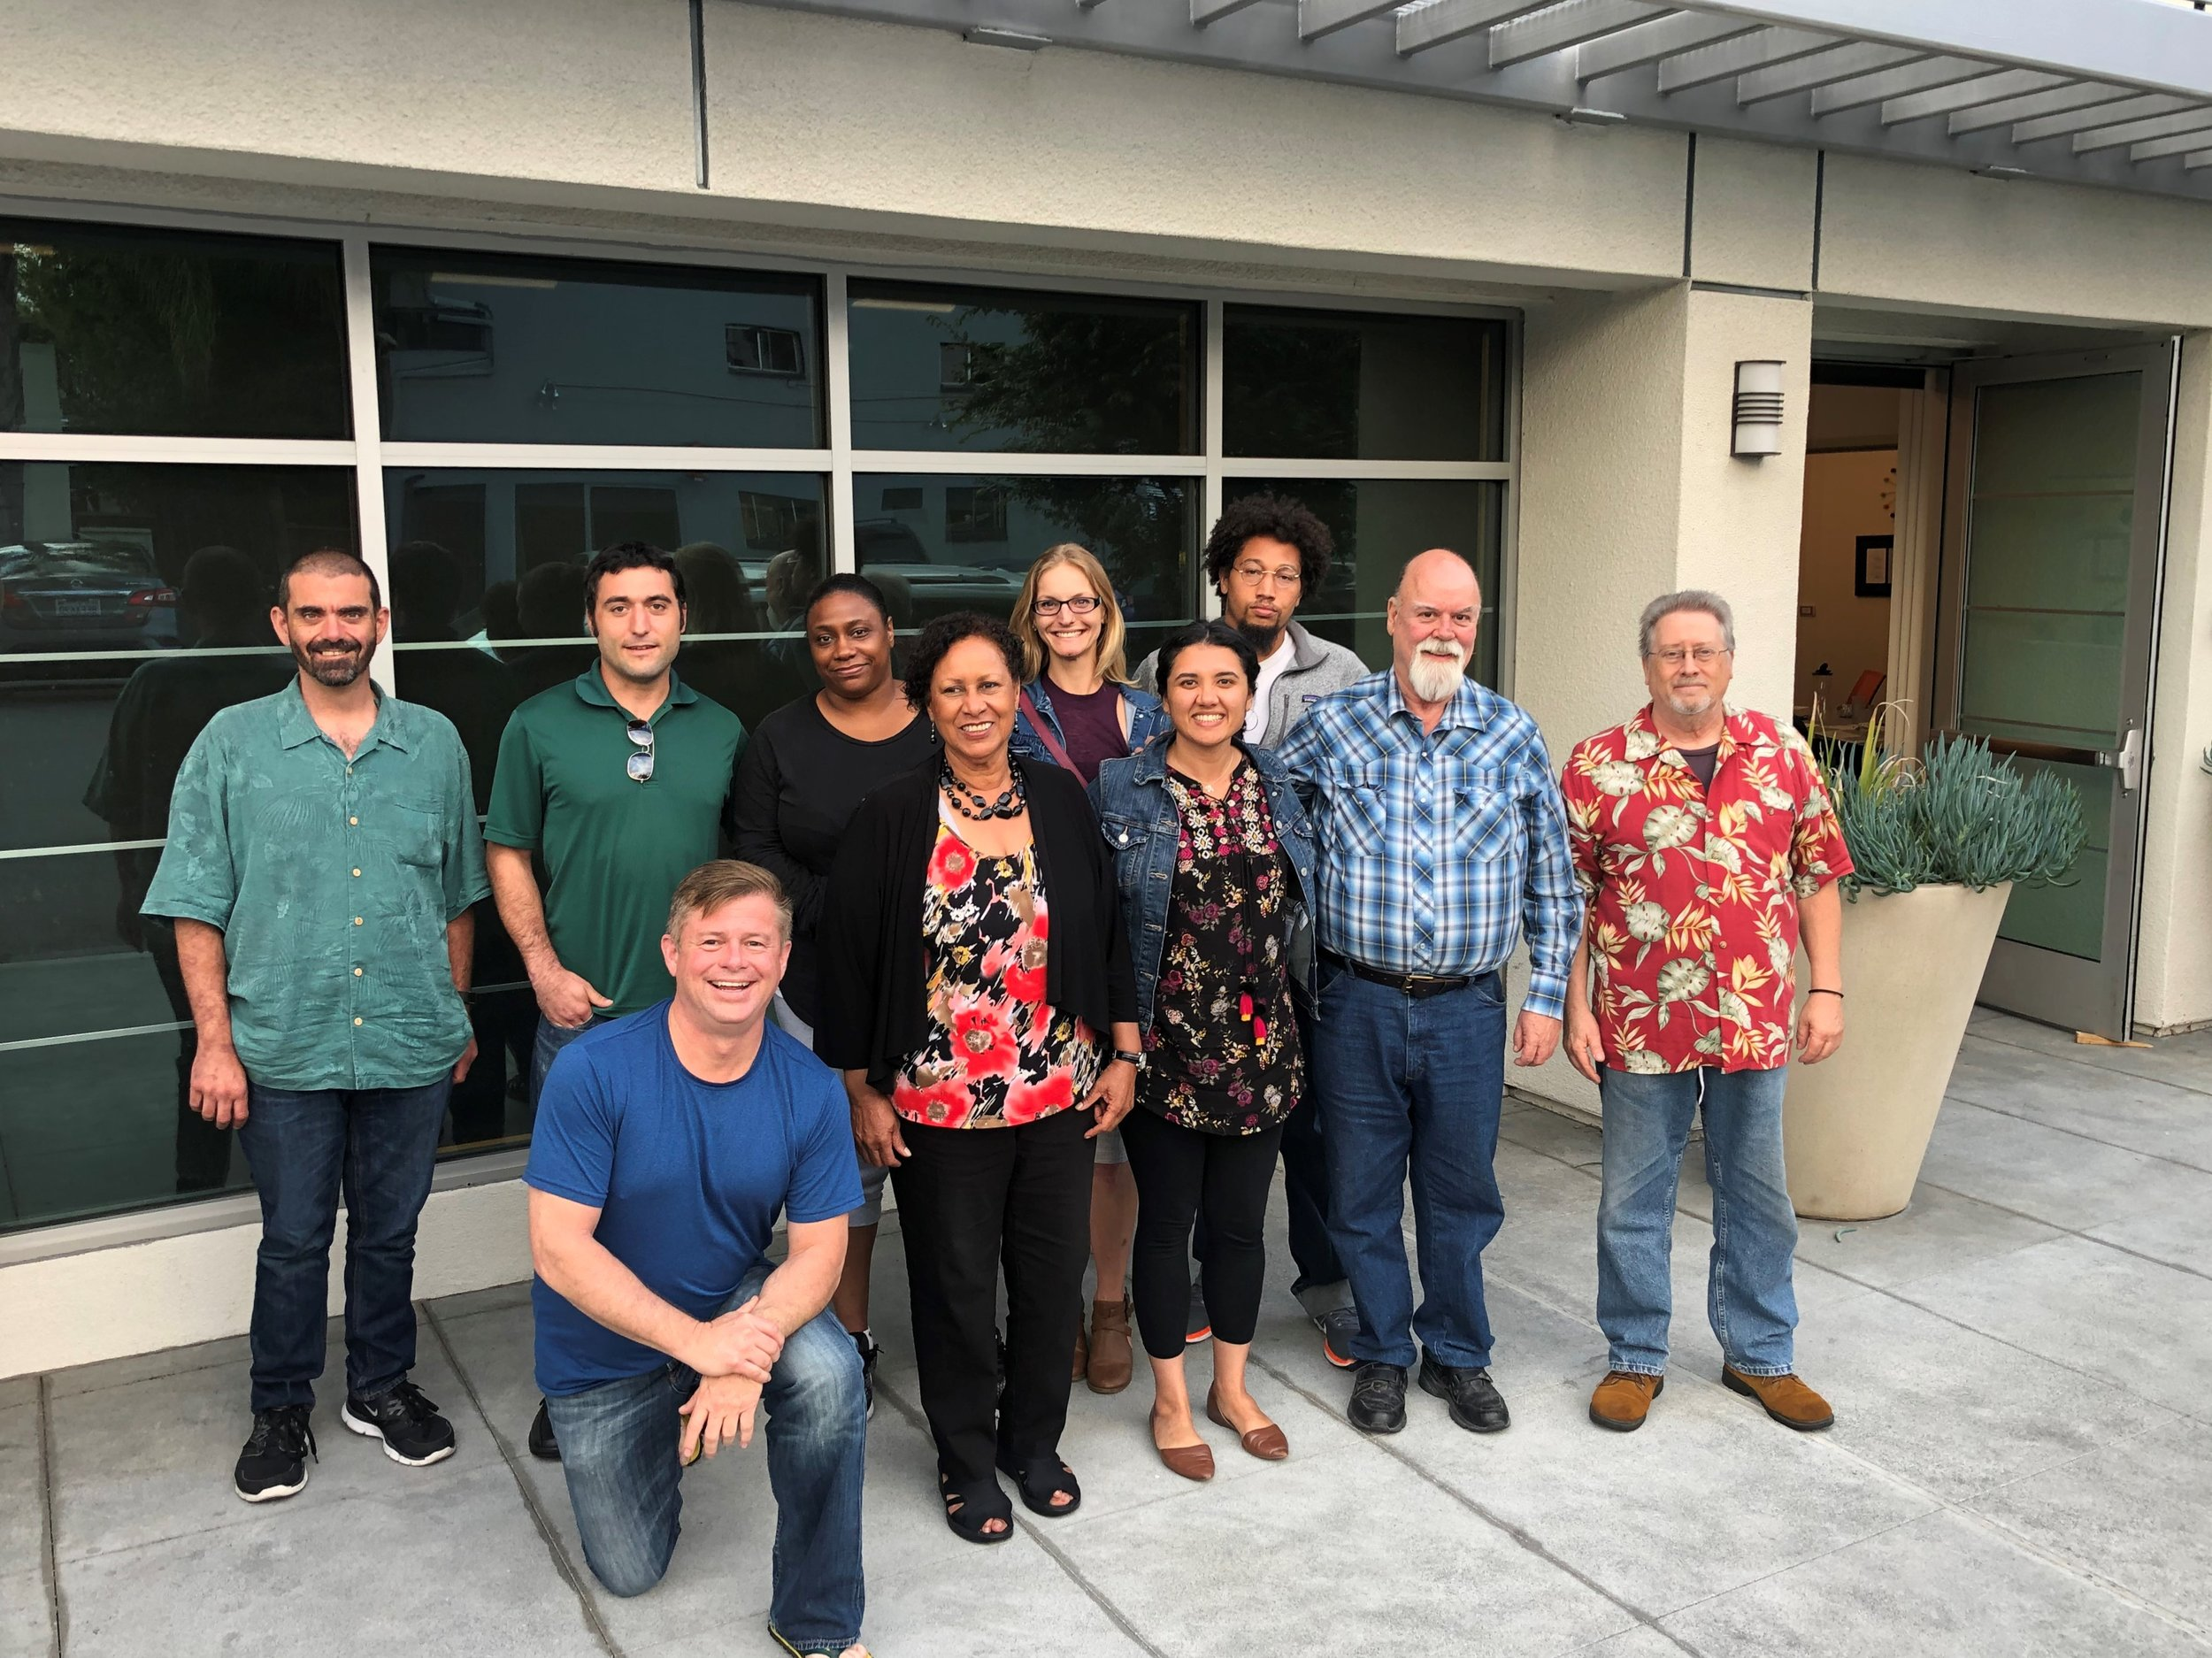 San Diego Cohort, June 2019